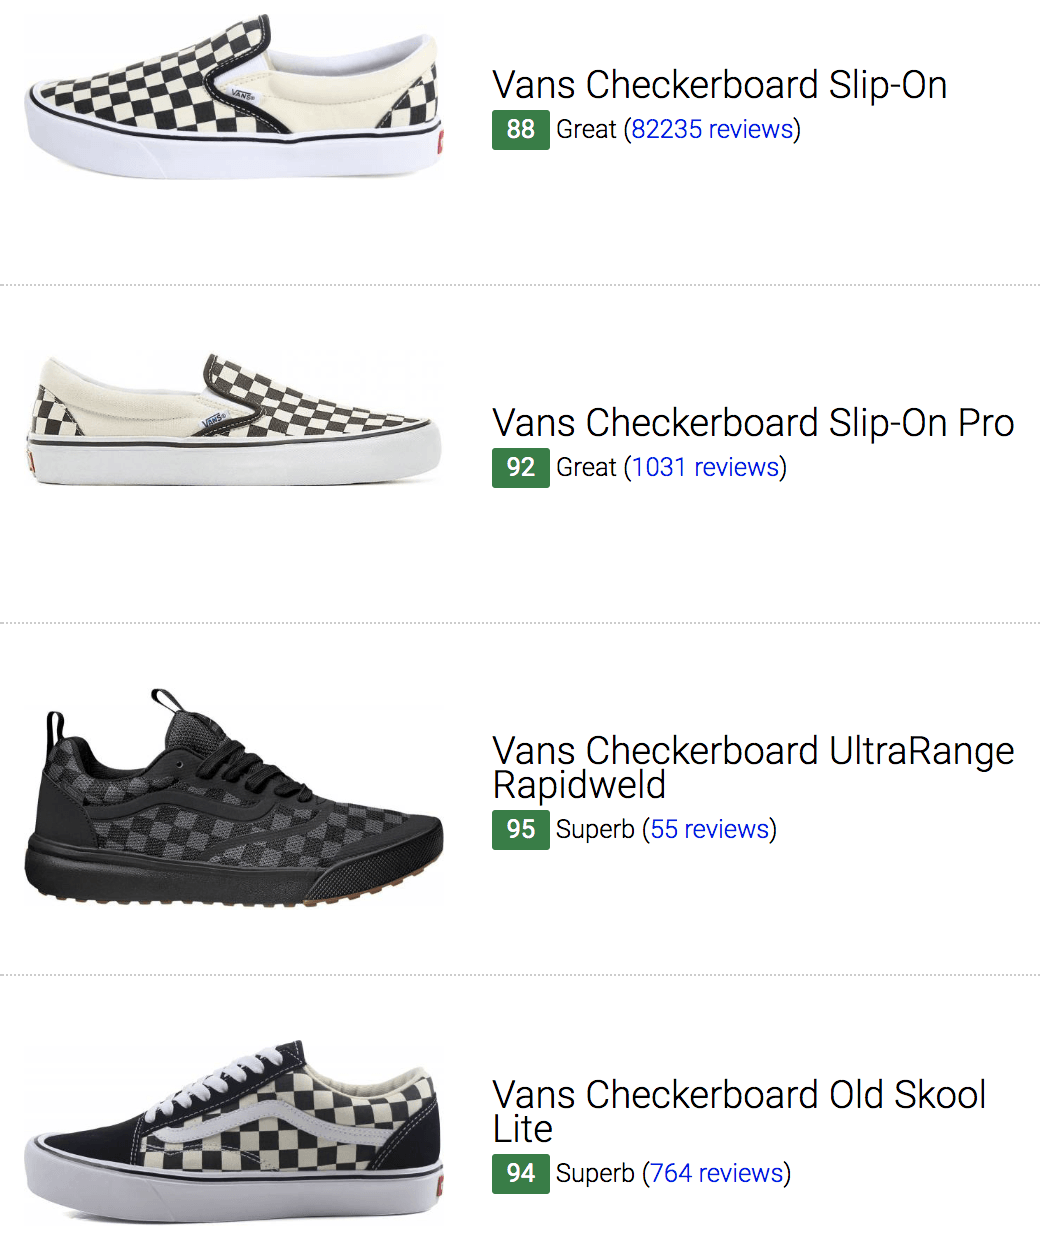 best vans checkerboard sneakers